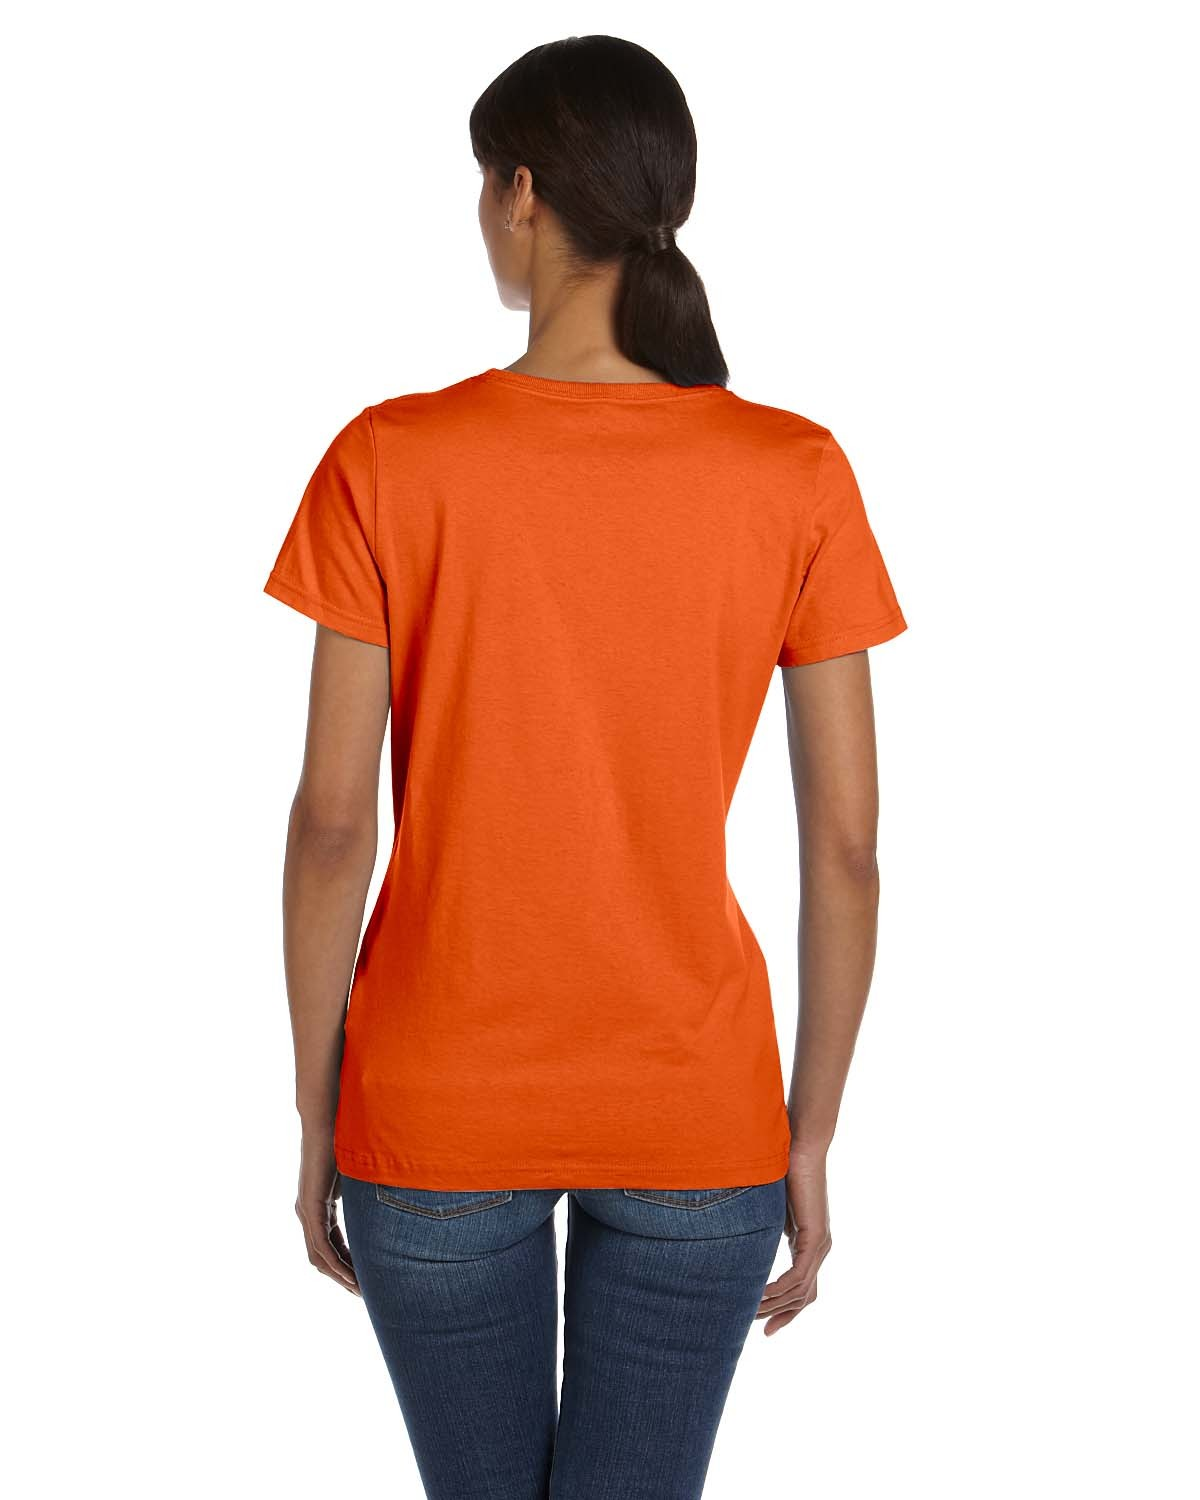 L3930R Fruit of the Loom BURNT ORANGE